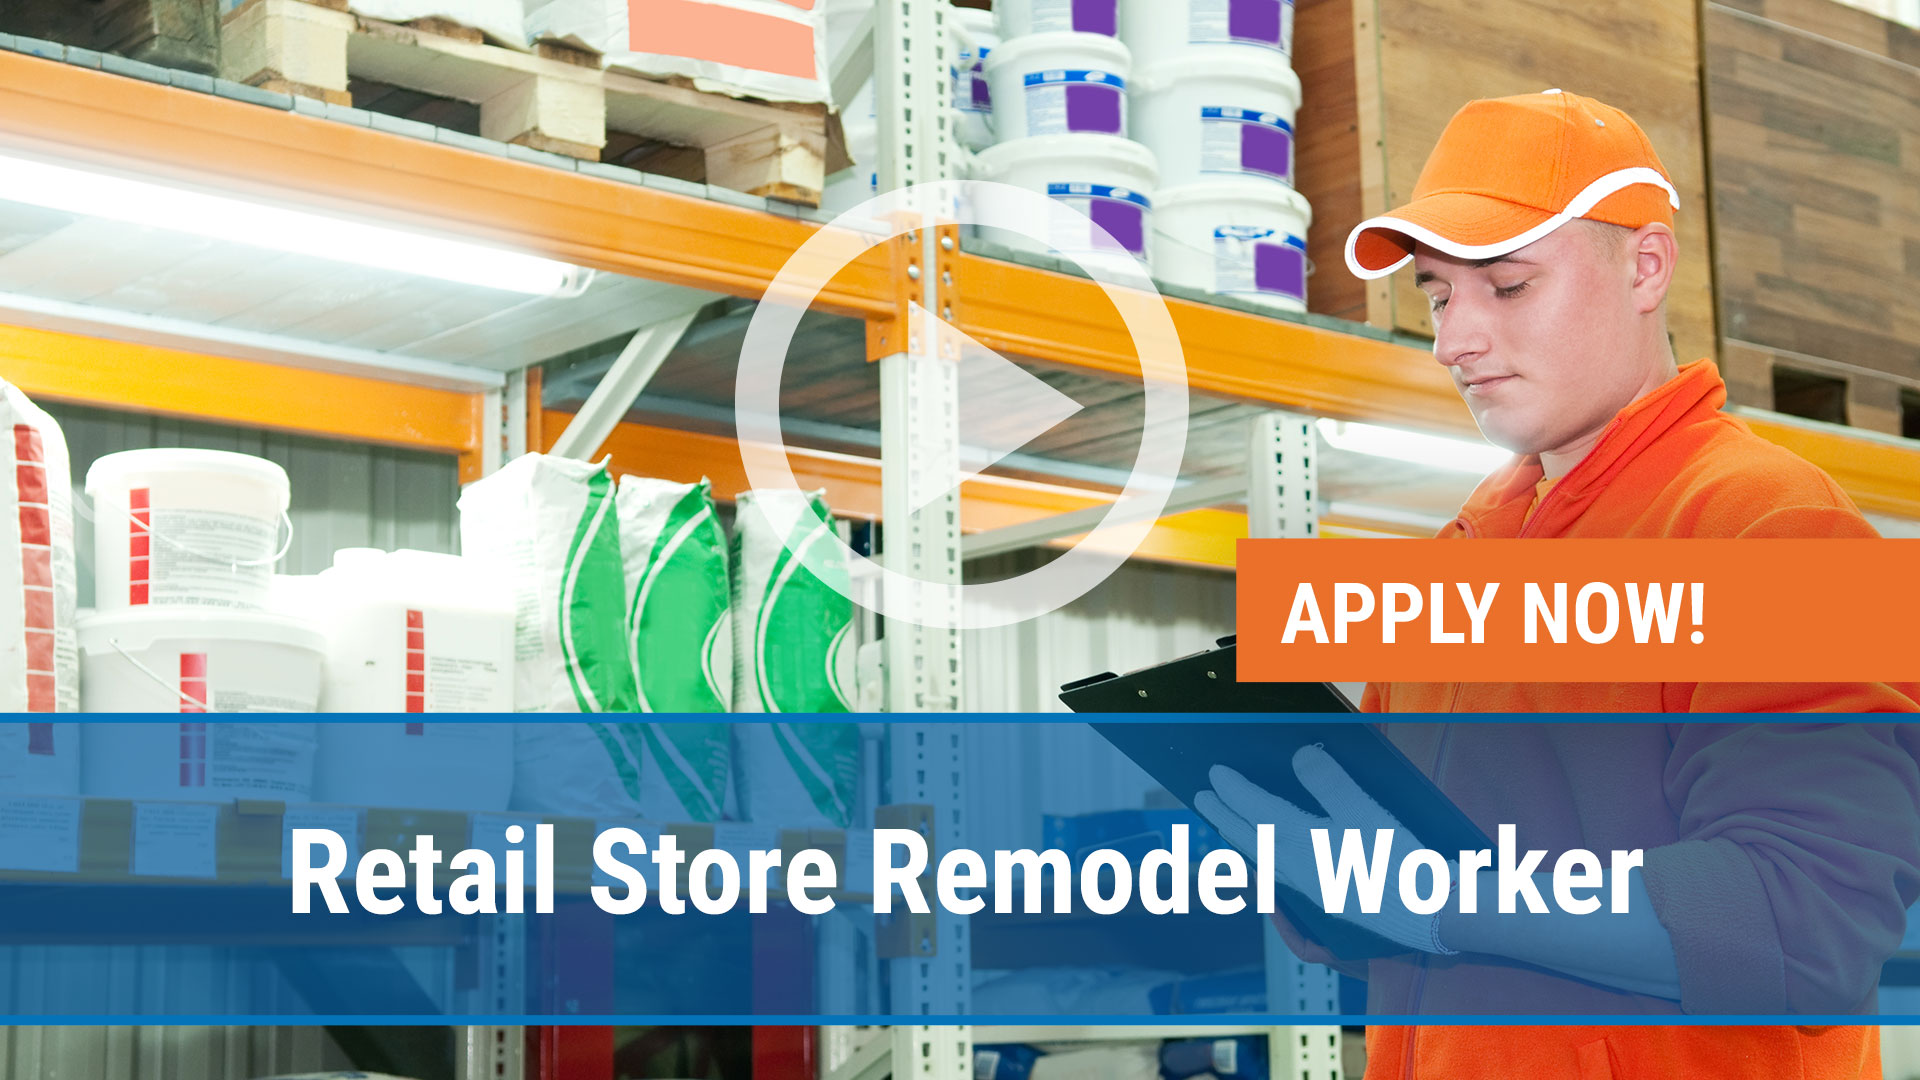 Watch our careers video for available job opening Retail Store Remodel Workers in Canal Winchester, OH, USA